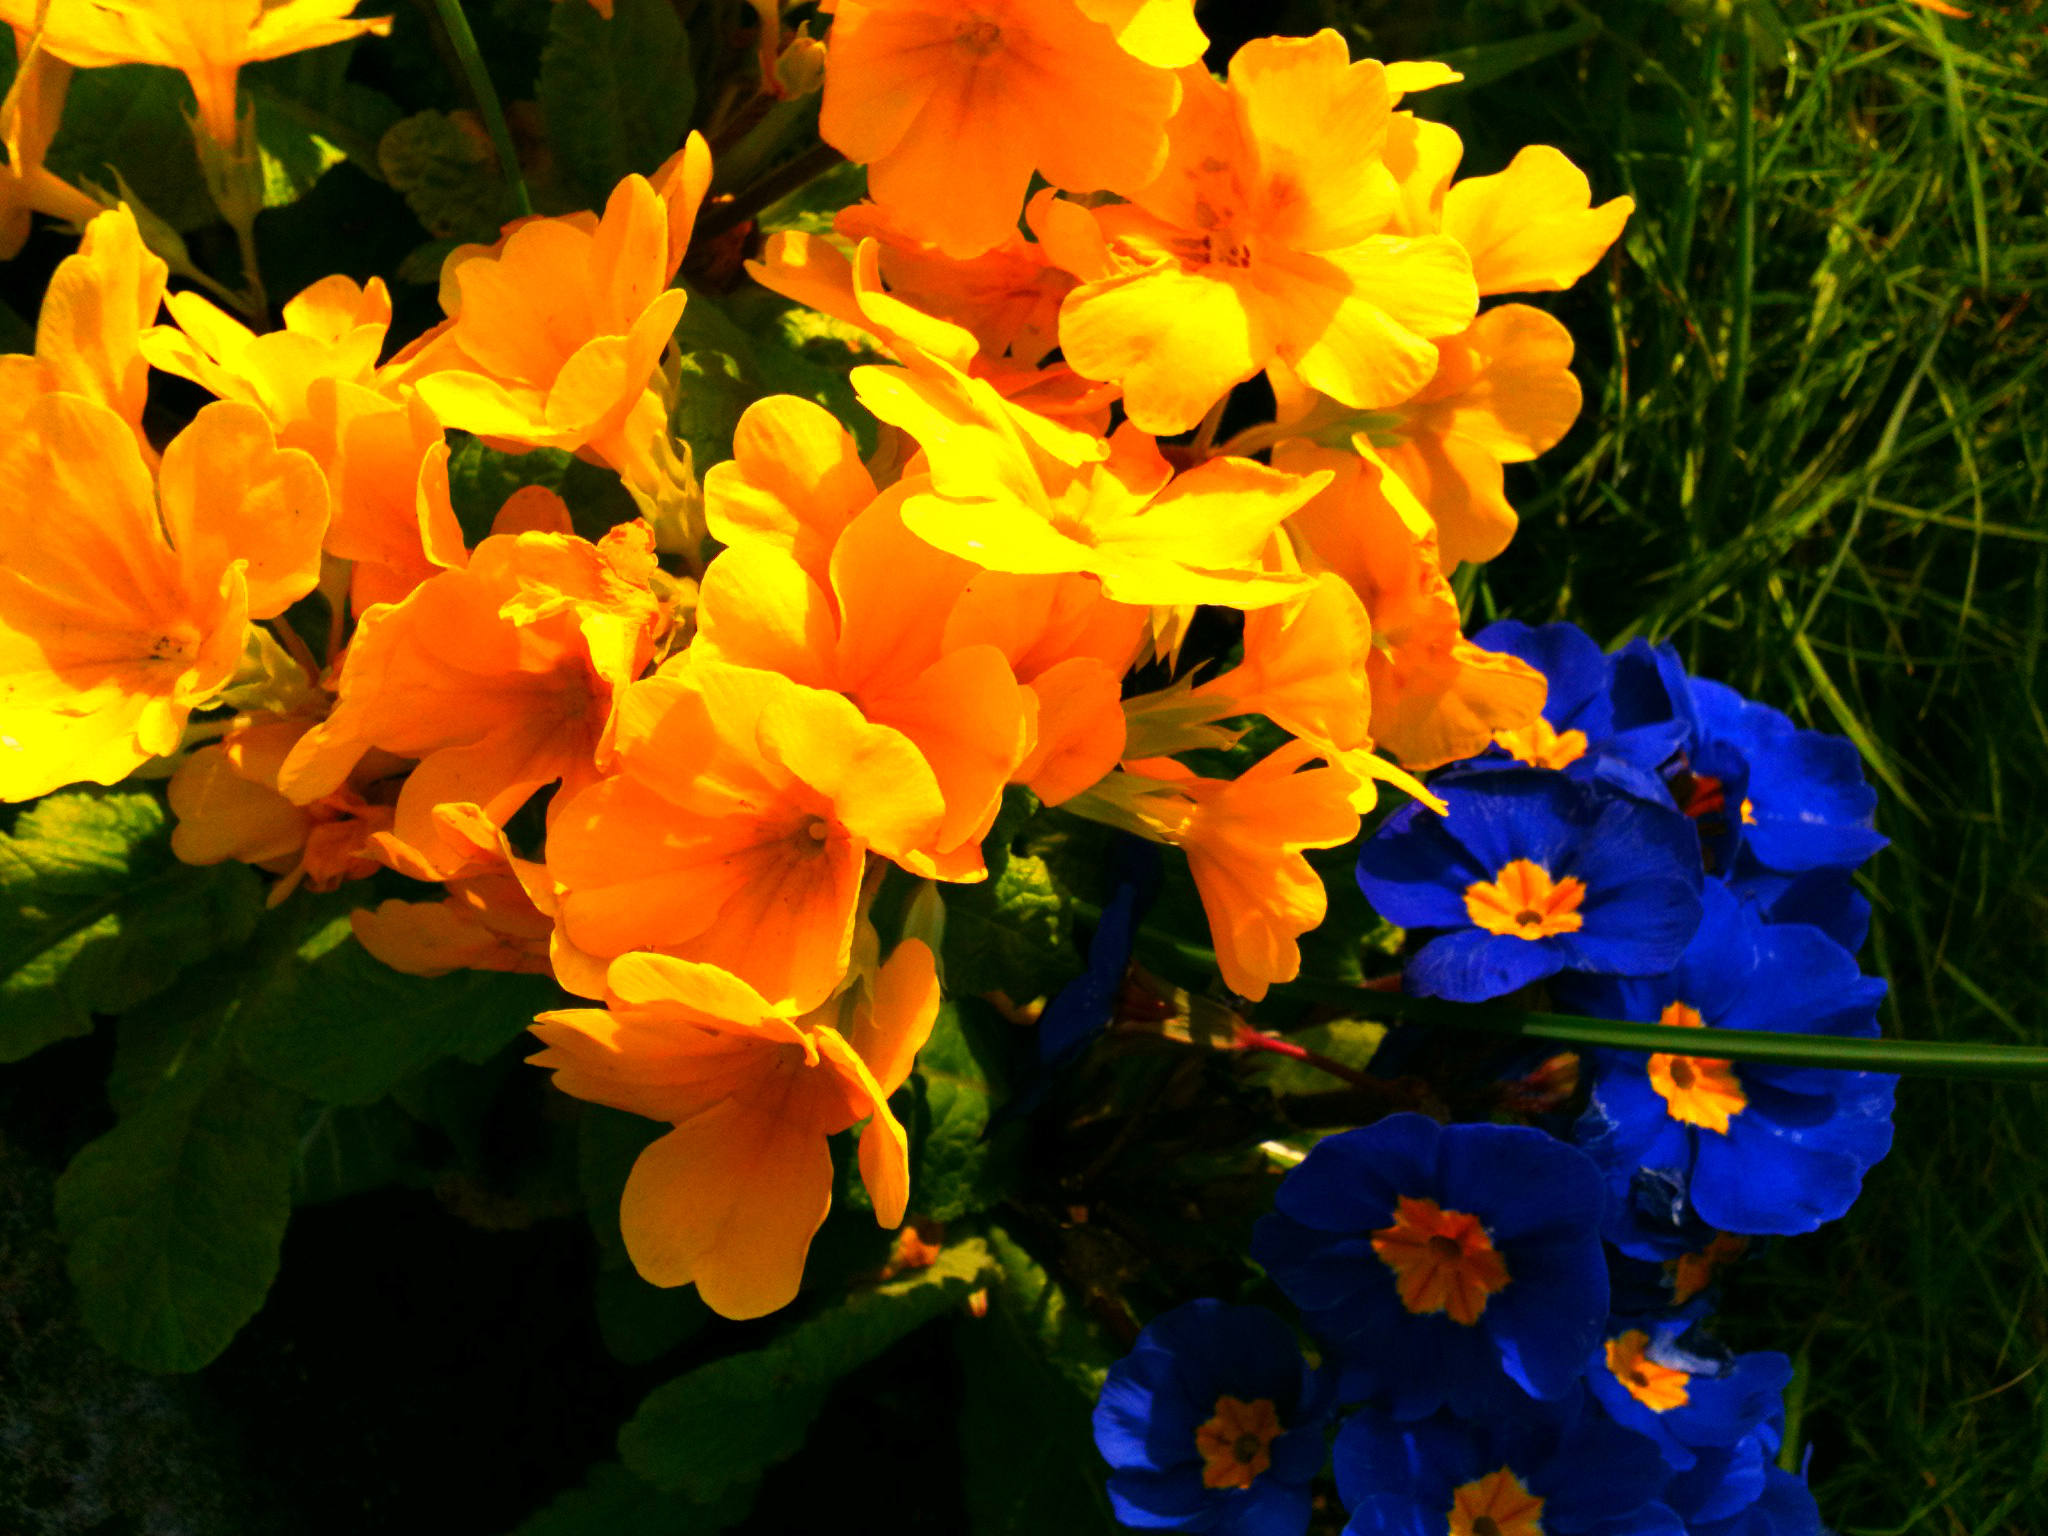 Blue And Yellow Flowers By Artisticanna12 On Deviantart